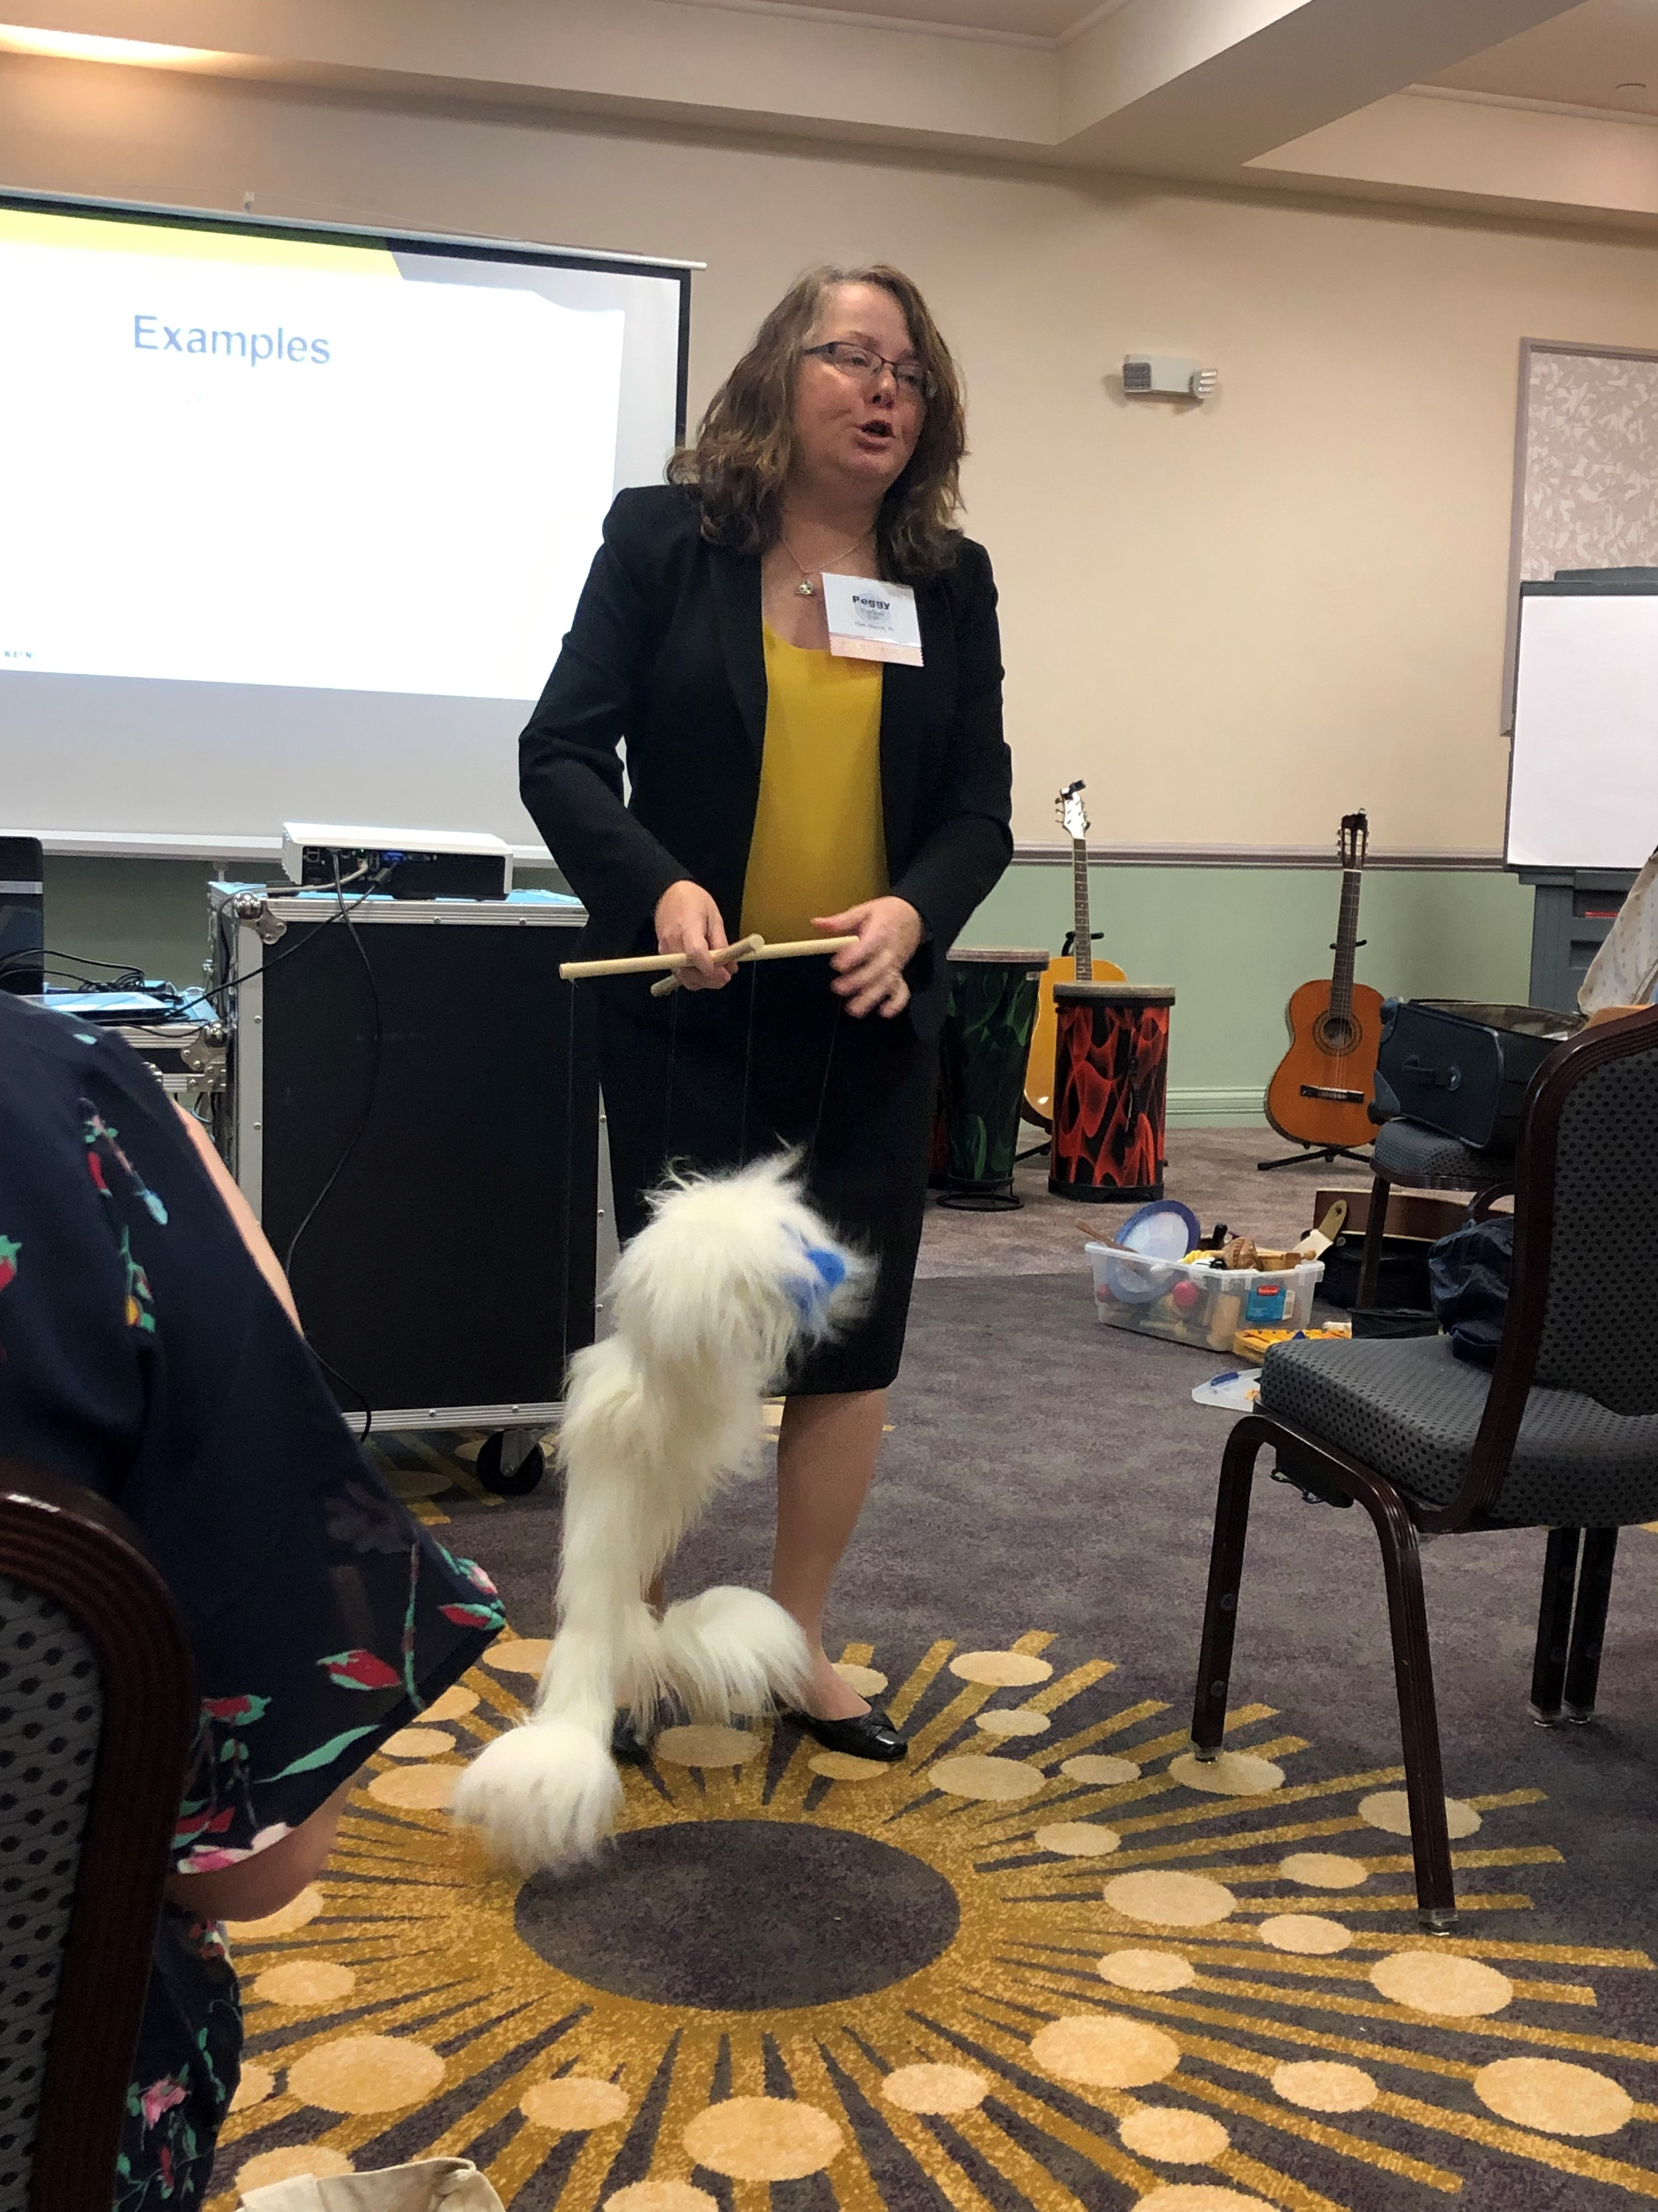 Music therapist and educator Peggy Farlow demonstrates an activity with a marionette during a music therapy conference